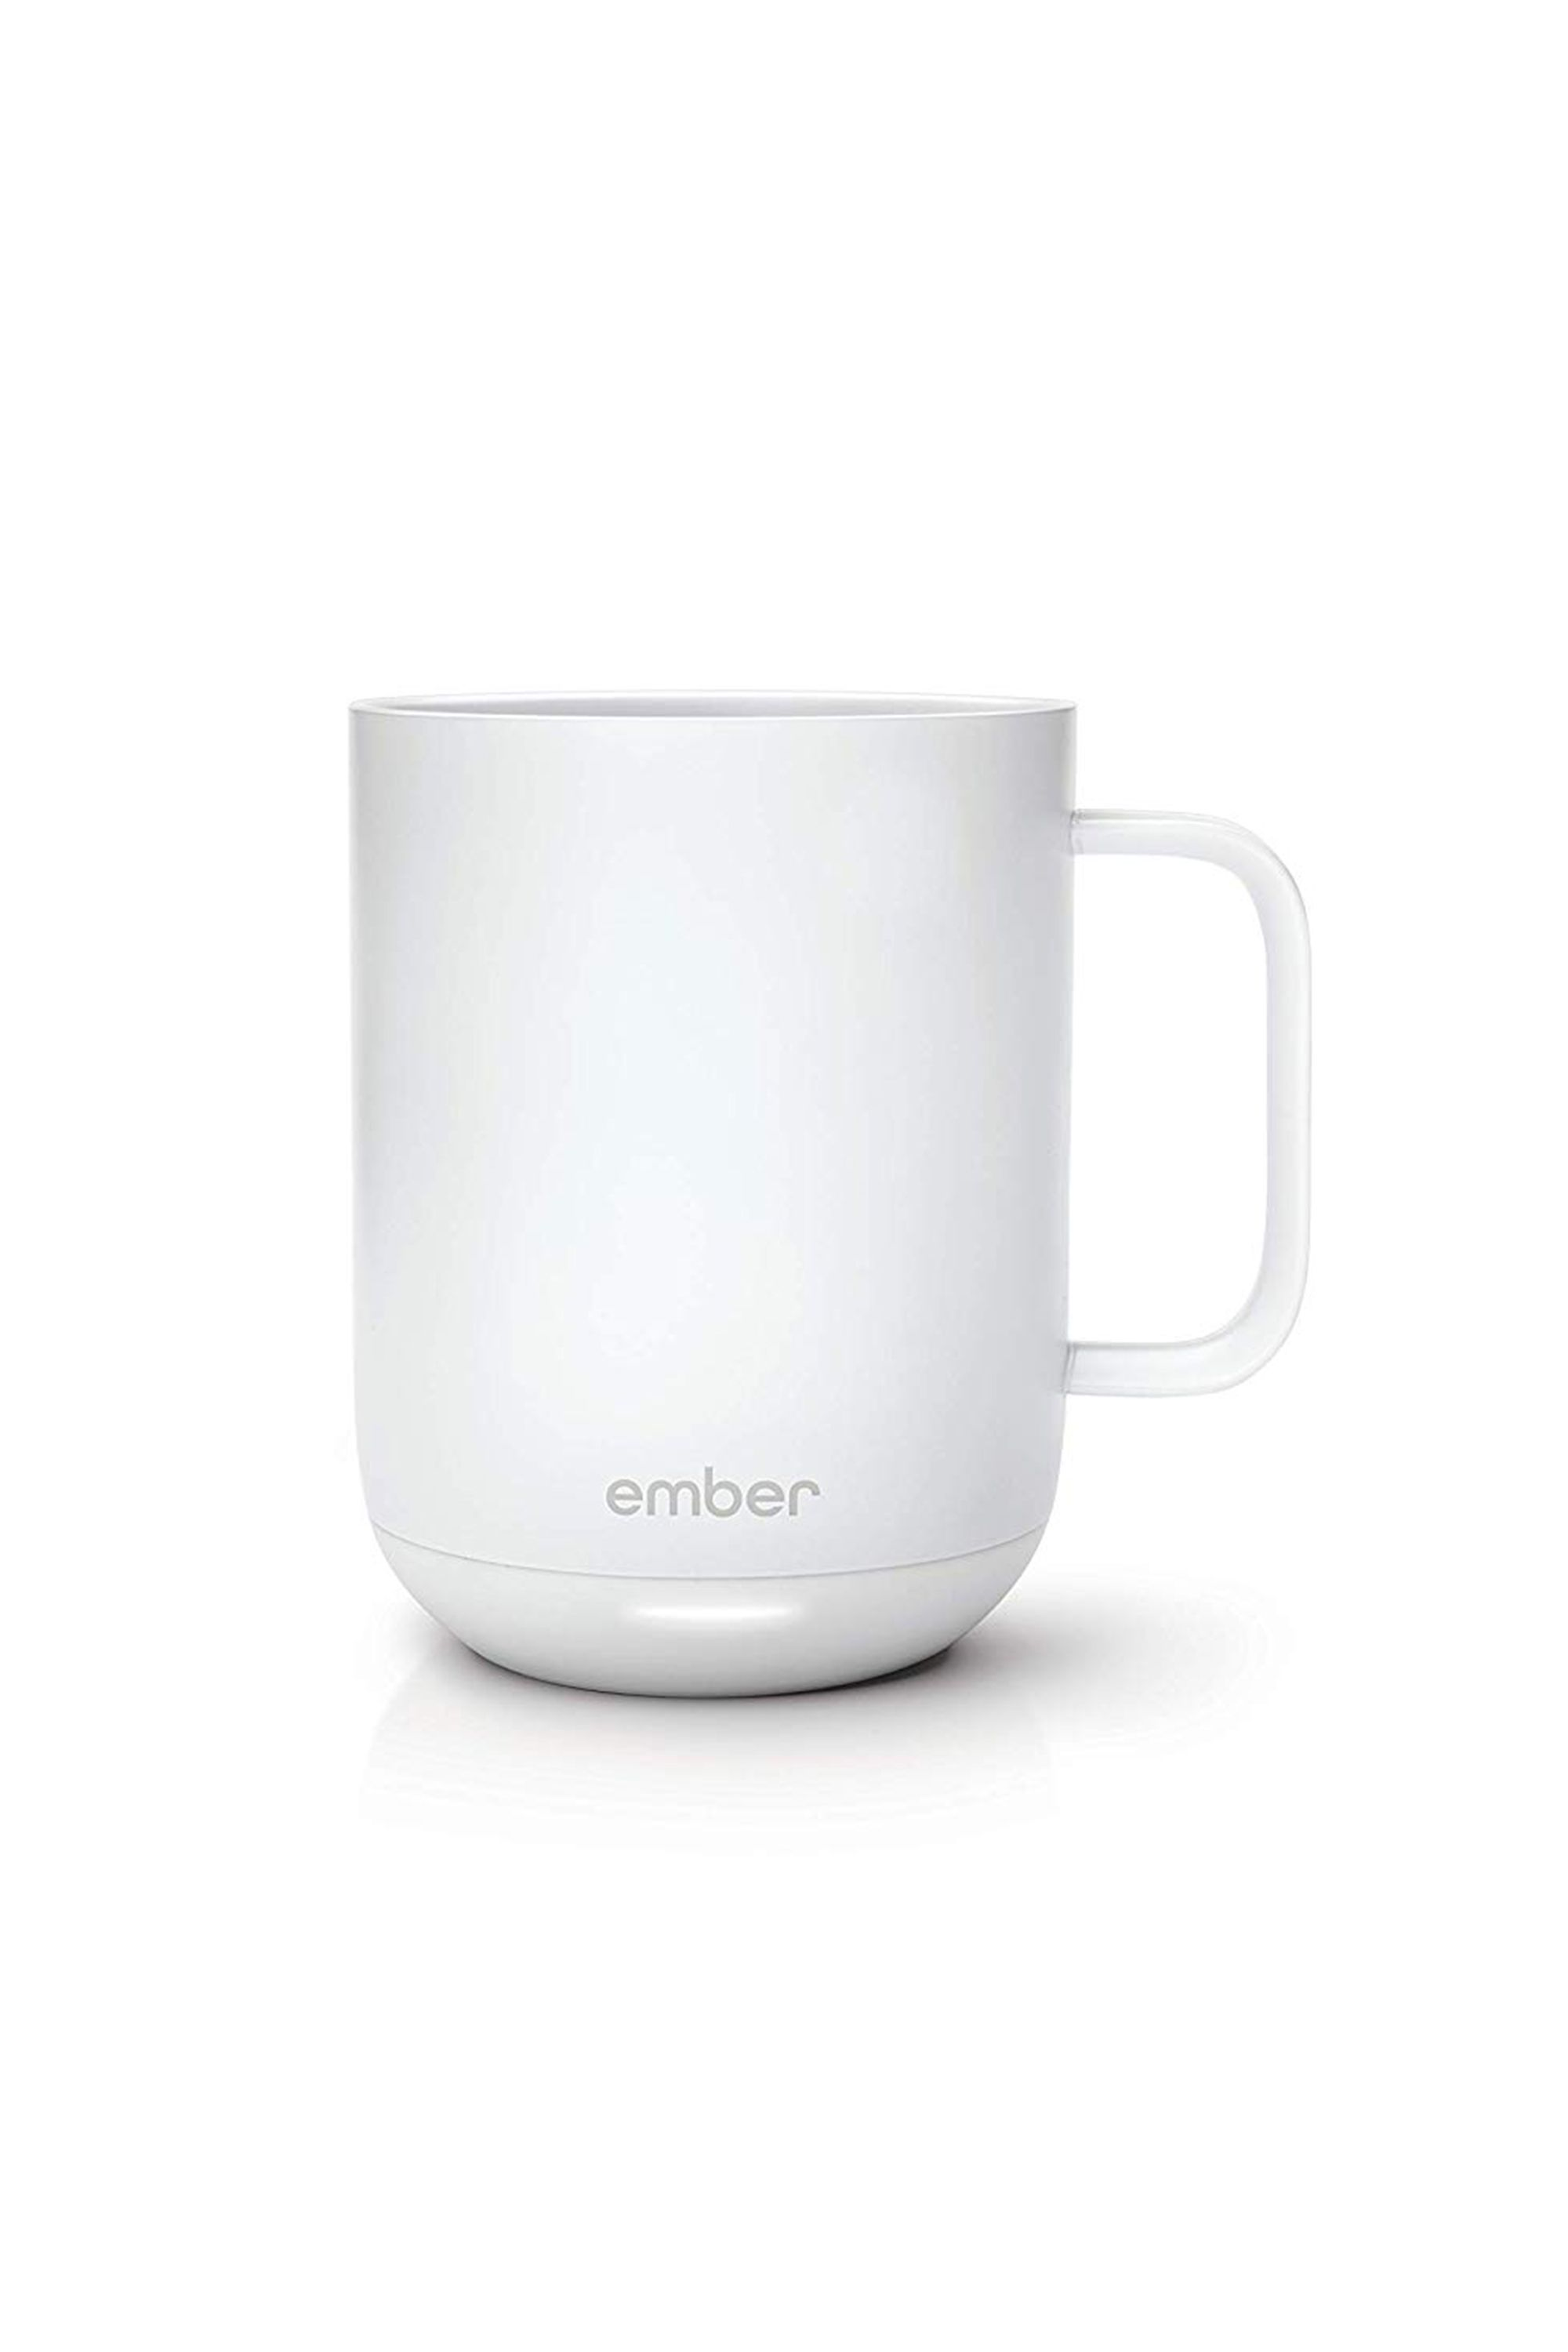 Temperature Control Ceramic Mug Ember amazon.com $79.95 SHOP NOW A pregnant ma can't have coffee just yet, so she's knee-deep in a tea obsession. This mug will keep her cuppa warm for hours.